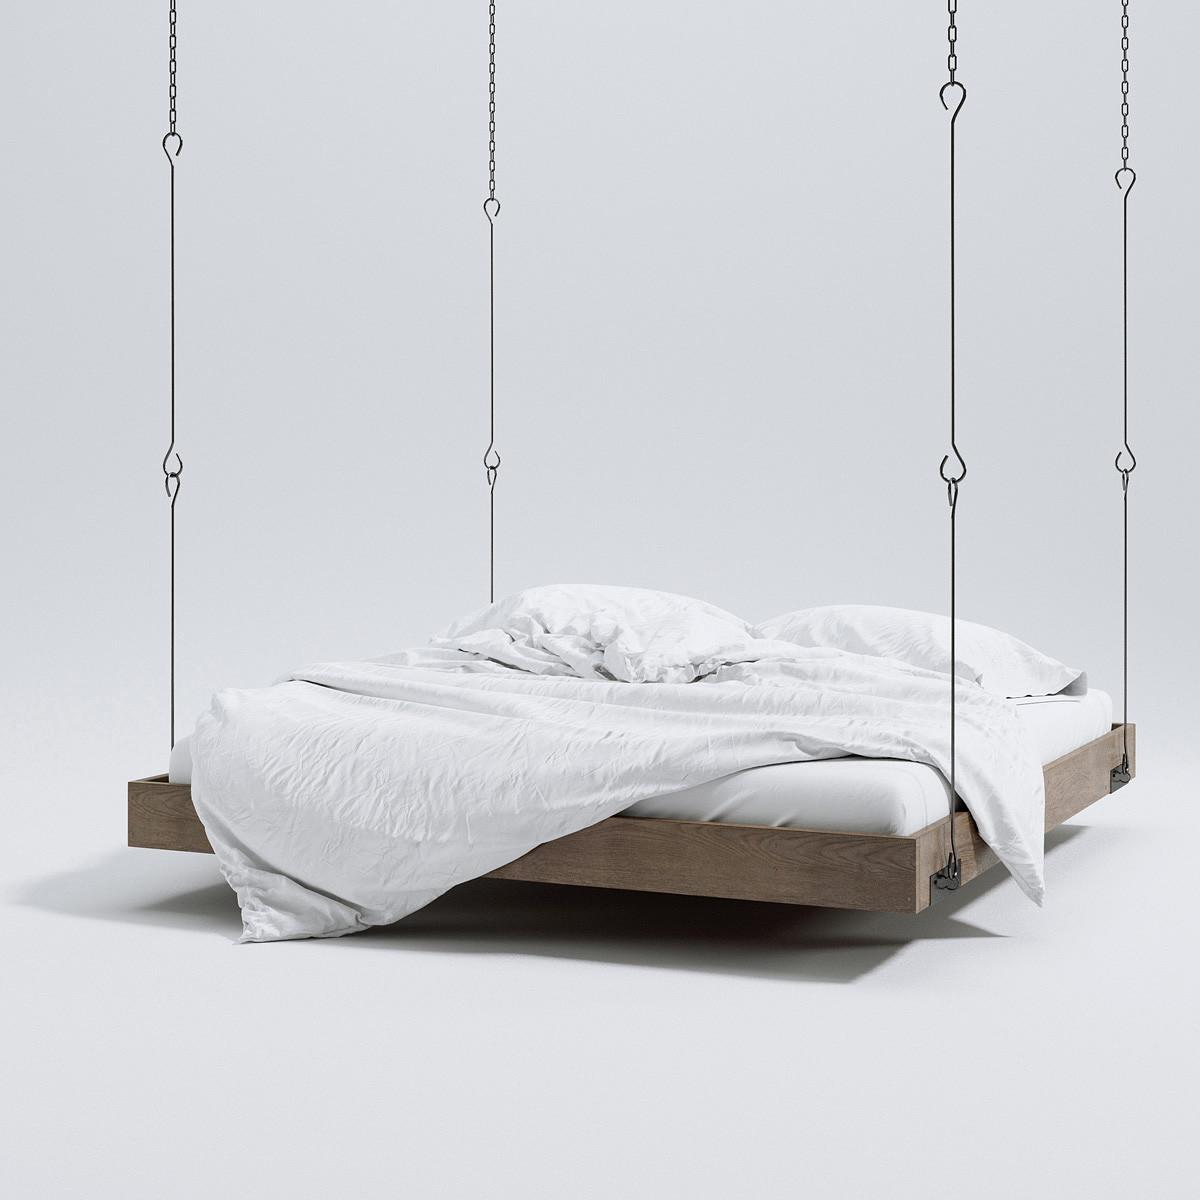 Hanging Bed Triangle Form Models Scenes